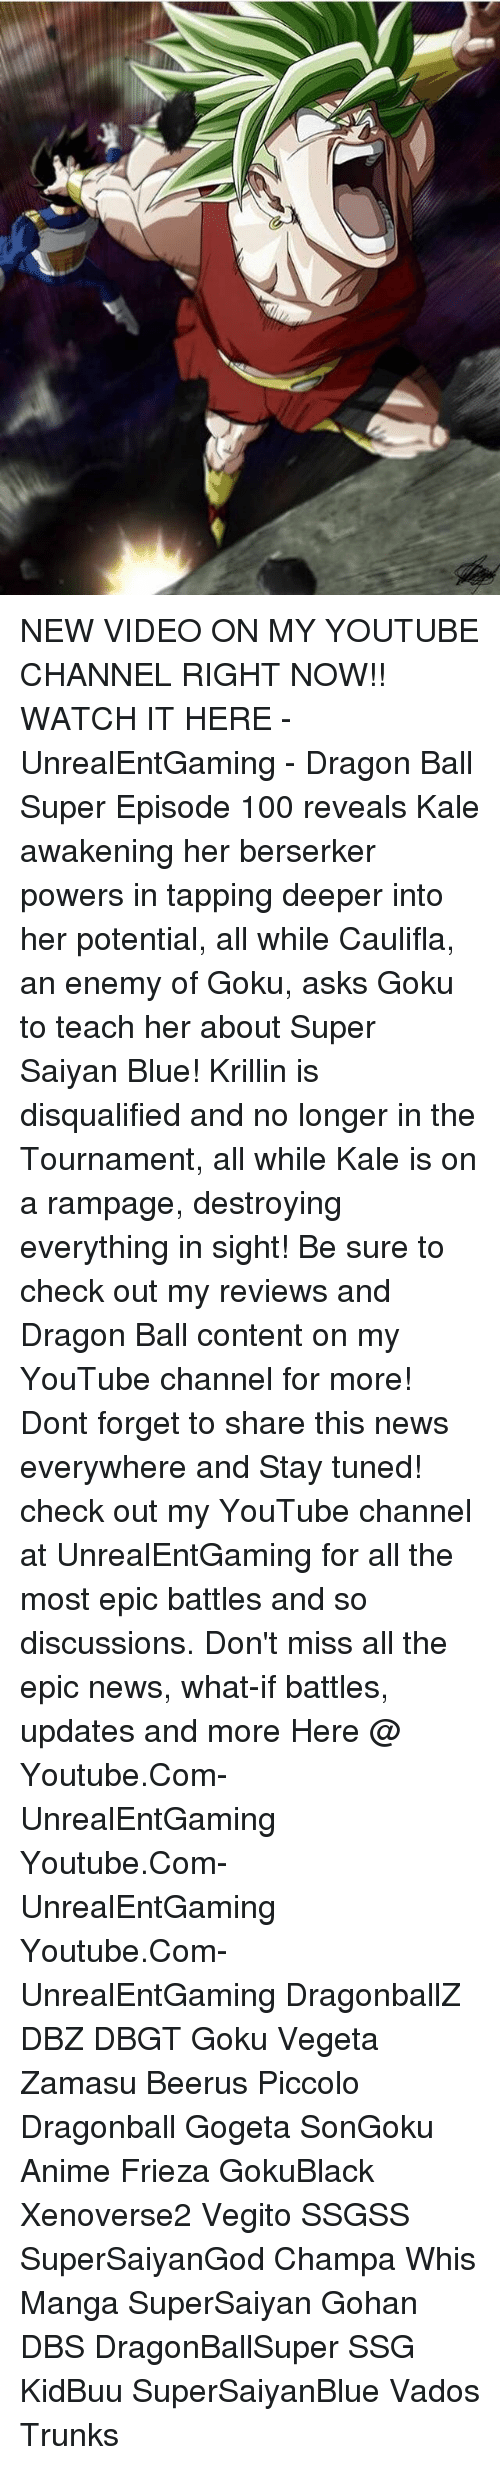 Most Epic: NEW VIDEO ON MY YOUTUBE CHANNEL RIGHT NOW!! WATCH IT HERE - UnrealEntGaming - Dragon Ball Super Episode 100 reveals Kale awakening her berserker powers in tapping deeper into her potential, all while Caulifla, an enemy of Goku, asks Goku to teach her about Super Saiyan Blue! Krillin is disqualified and no longer in the Tournament, all while Kale is on a rampage, destroying everything in sight! Be sure to check out my reviews and Dragon Ball content on my YouTube channel for more! Dont forget to share this news everywhere and Stay tuned! check out my YouTube channel at UnrealEntGaming for all the most epic battles and so discussions. Don't miss all the epic news, what-if battles, updates and more Here @ Youtube.Com-UnrealEntGaming Youtube.Com-UnrealEntGaming Youtube.Com-UnrealEntGaming DragonballZ DBZ DBGT Goku Vegeta Zamasu Beerus Piccolo Dragonball Gogeta SonGoku Anime Frieza GokuBlack Xenoverse2 Vegito SSGSS SuperSaiyanGod Champa Whis Manga SuperSaiyan Gohan DBS DragonBallSuper SSG KidBuu SuperSaiyanBlue Vados Trunks